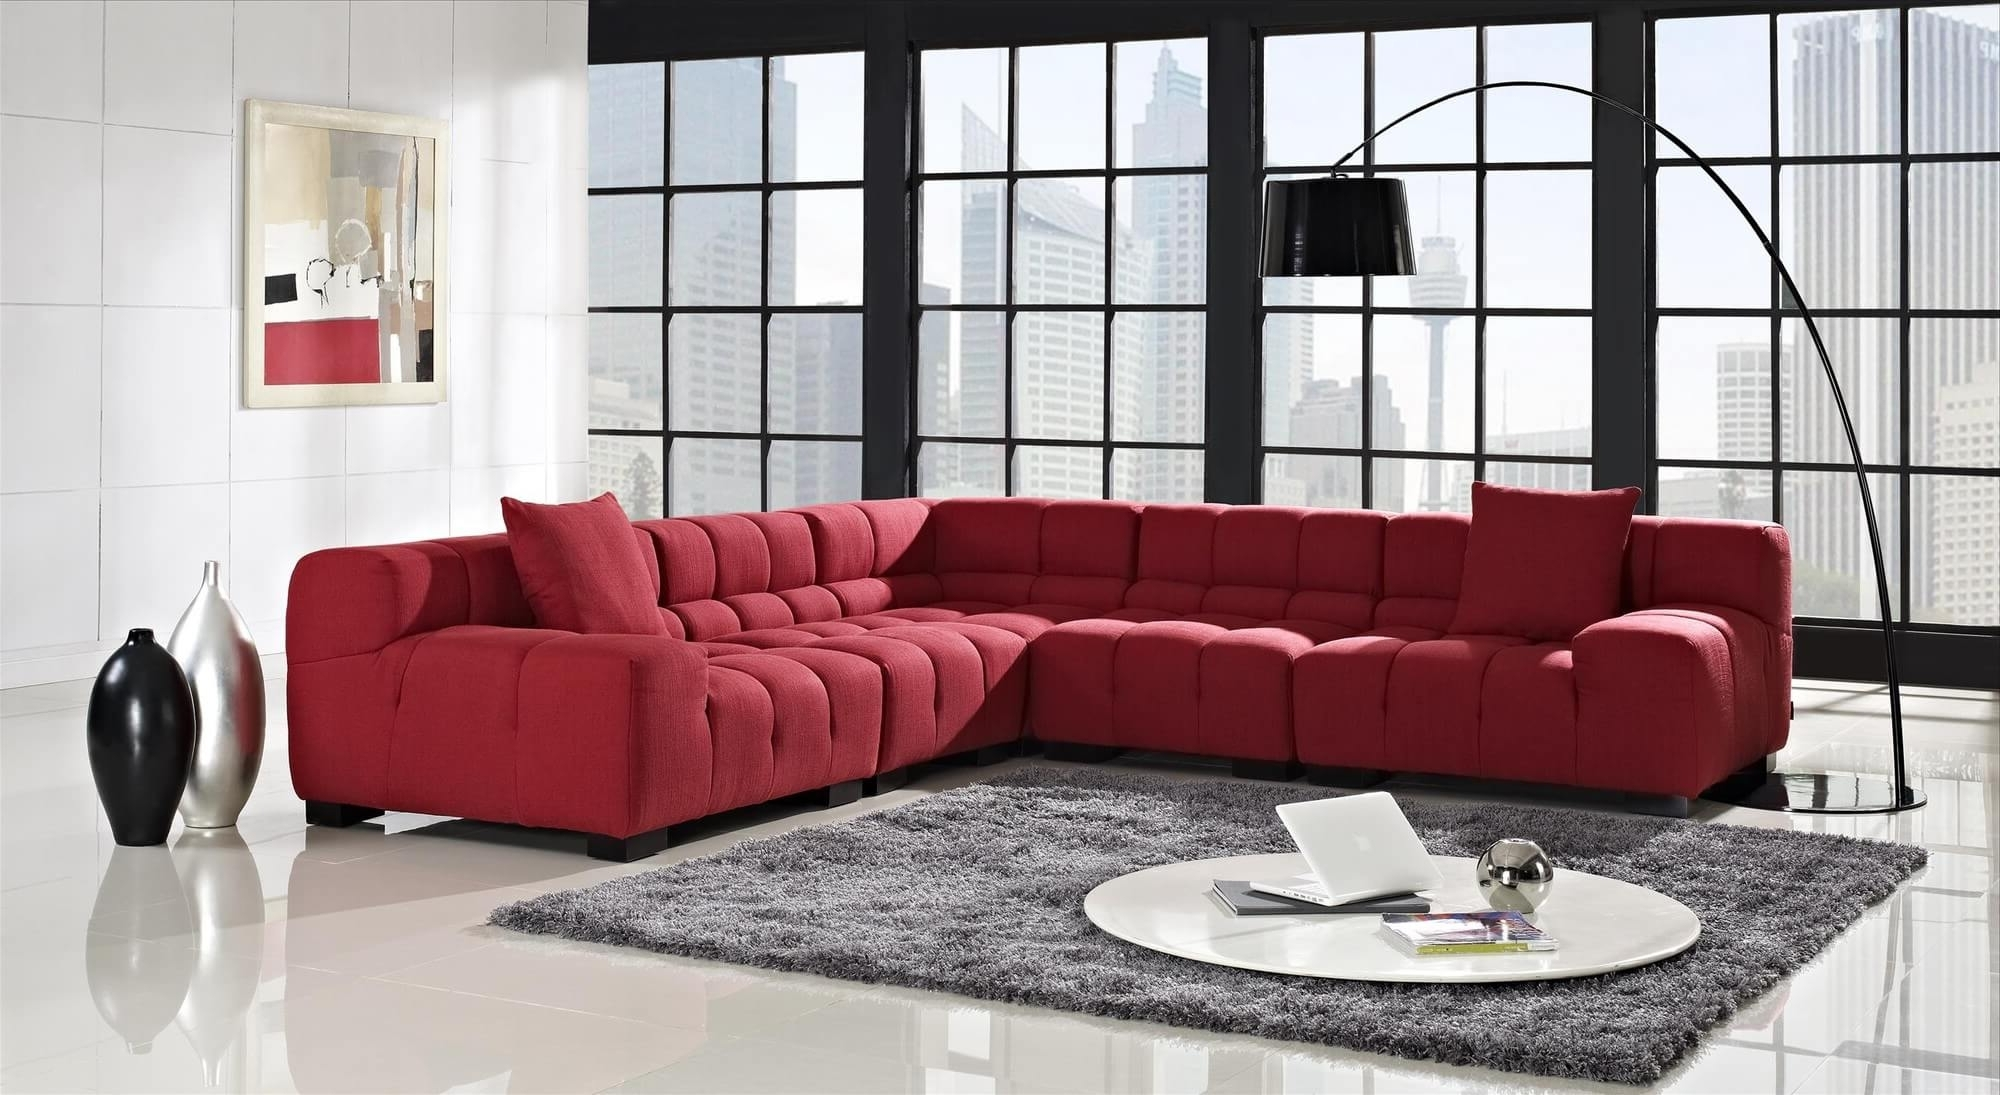 18 Stylish Modern Red Sectional Sofas Within Trendy Small Red Leather Sectional Sofas (Gallery 12 of 15)